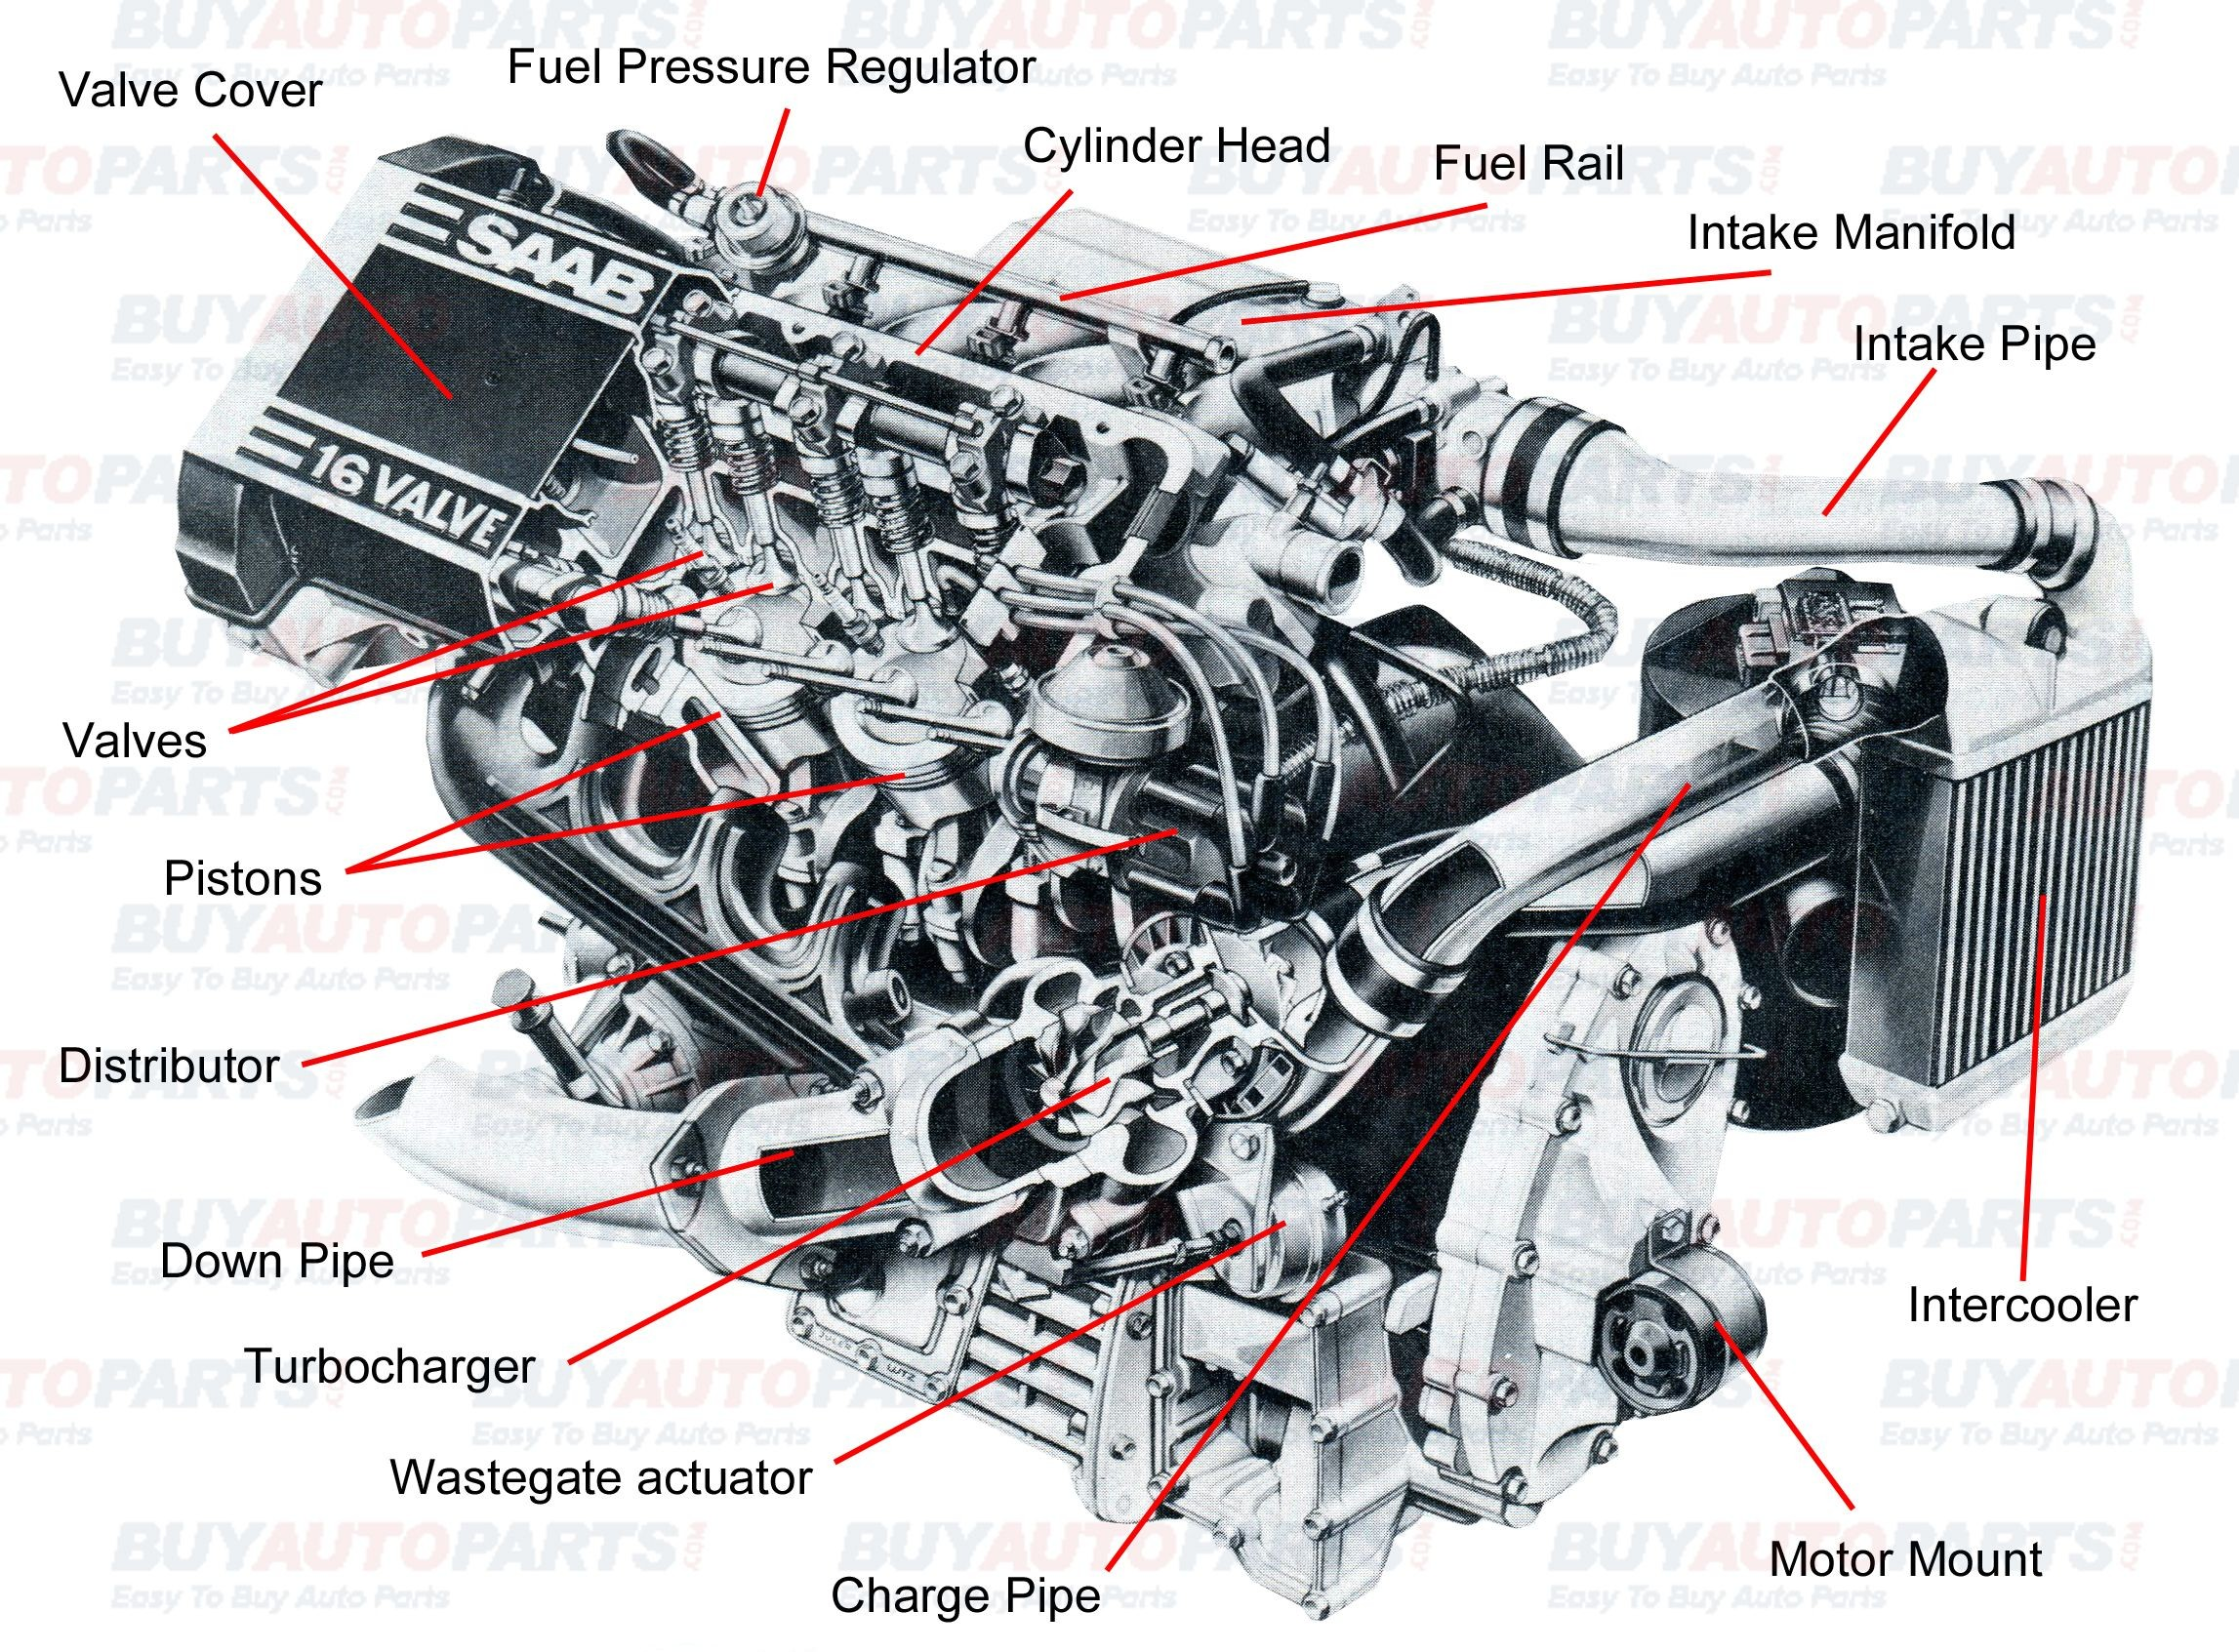 Car Parts Diagram Under Hood All Internal Bustion Engines Have the Same Basic Ponents the Of Car Parts Diagram Under Hood